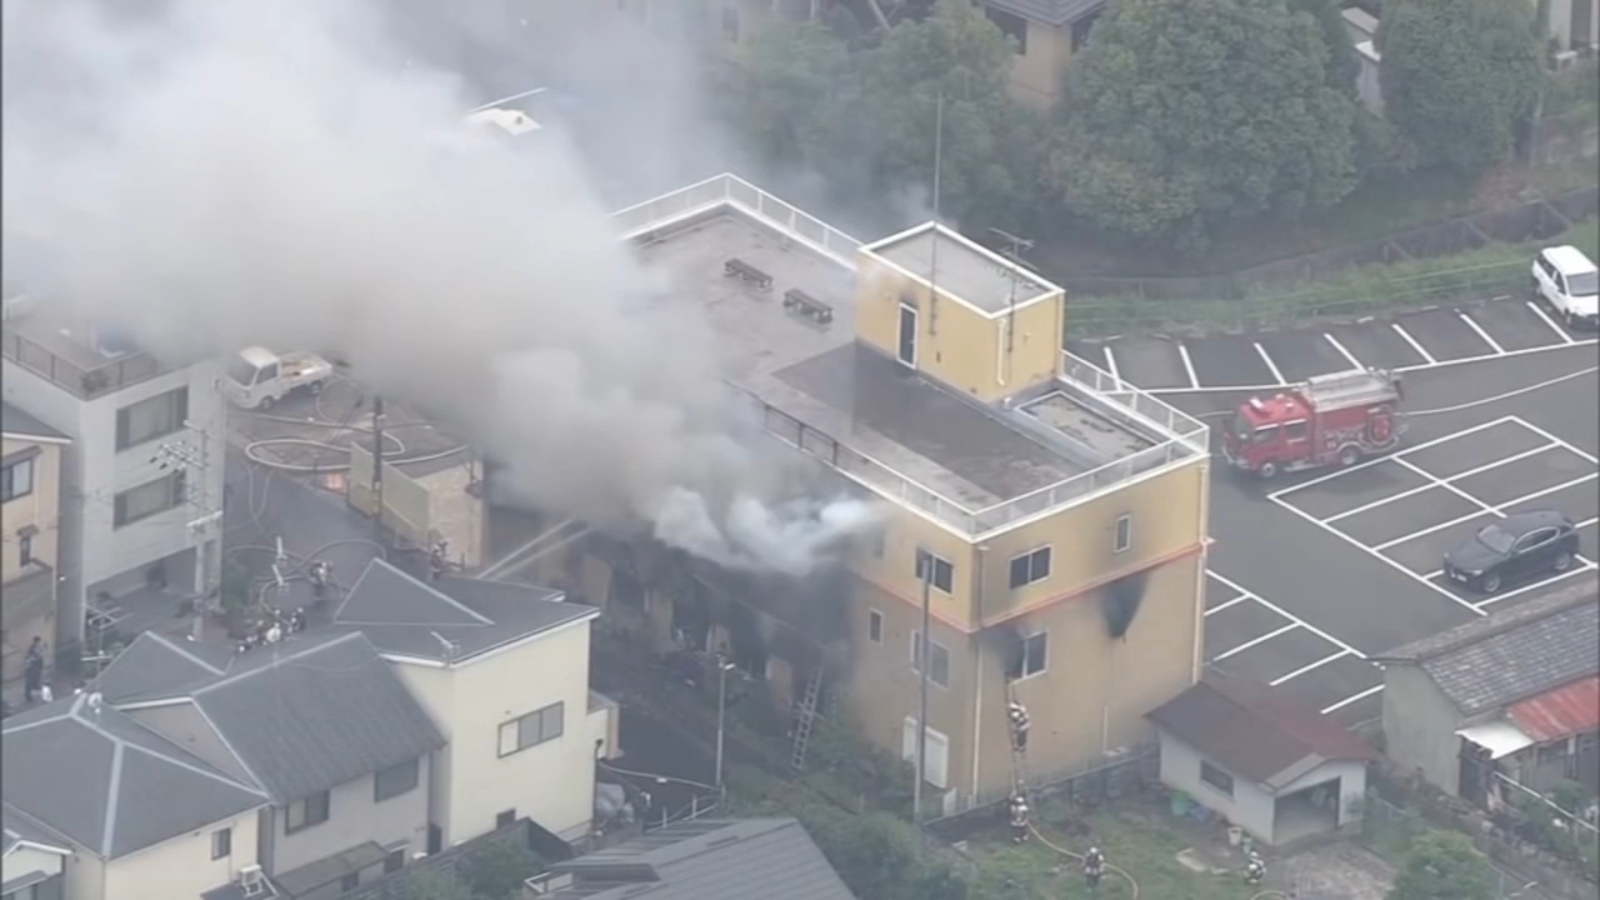 At least 20 killed after suspect sets anime studio on fire in Tokyo